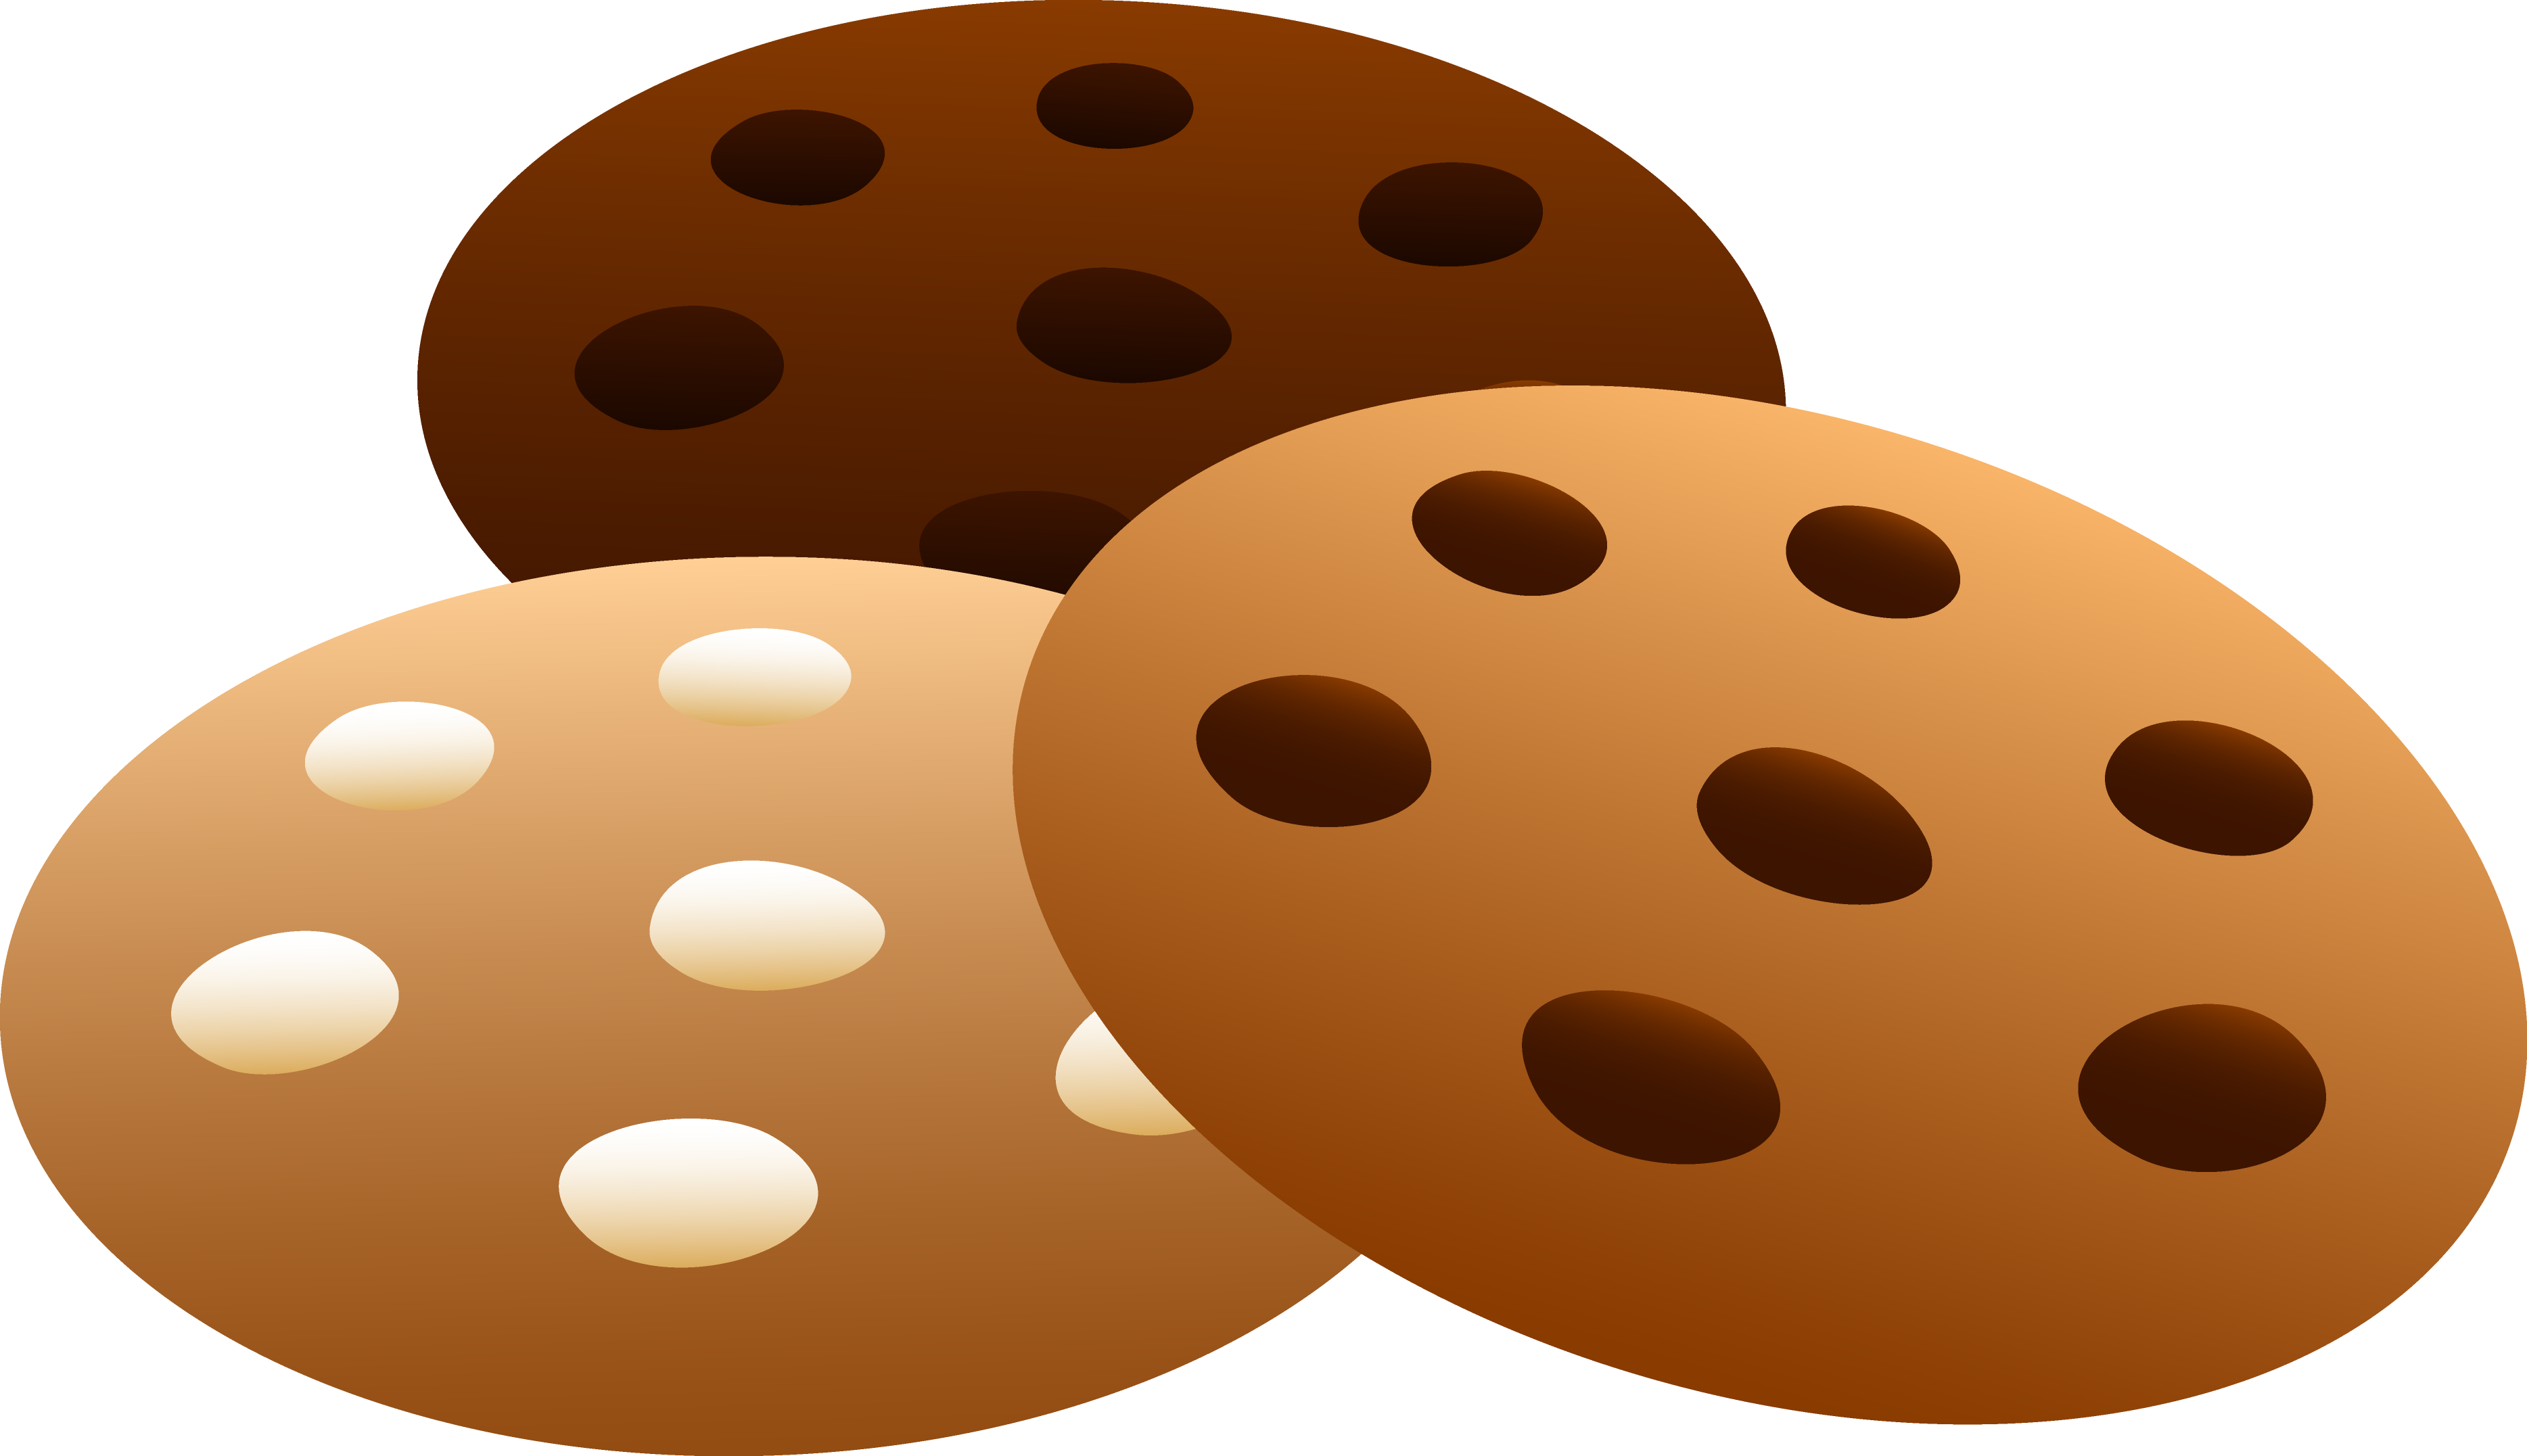 Three Flavors Of Cookies Free - Chocolate Chip Cookies Clipart